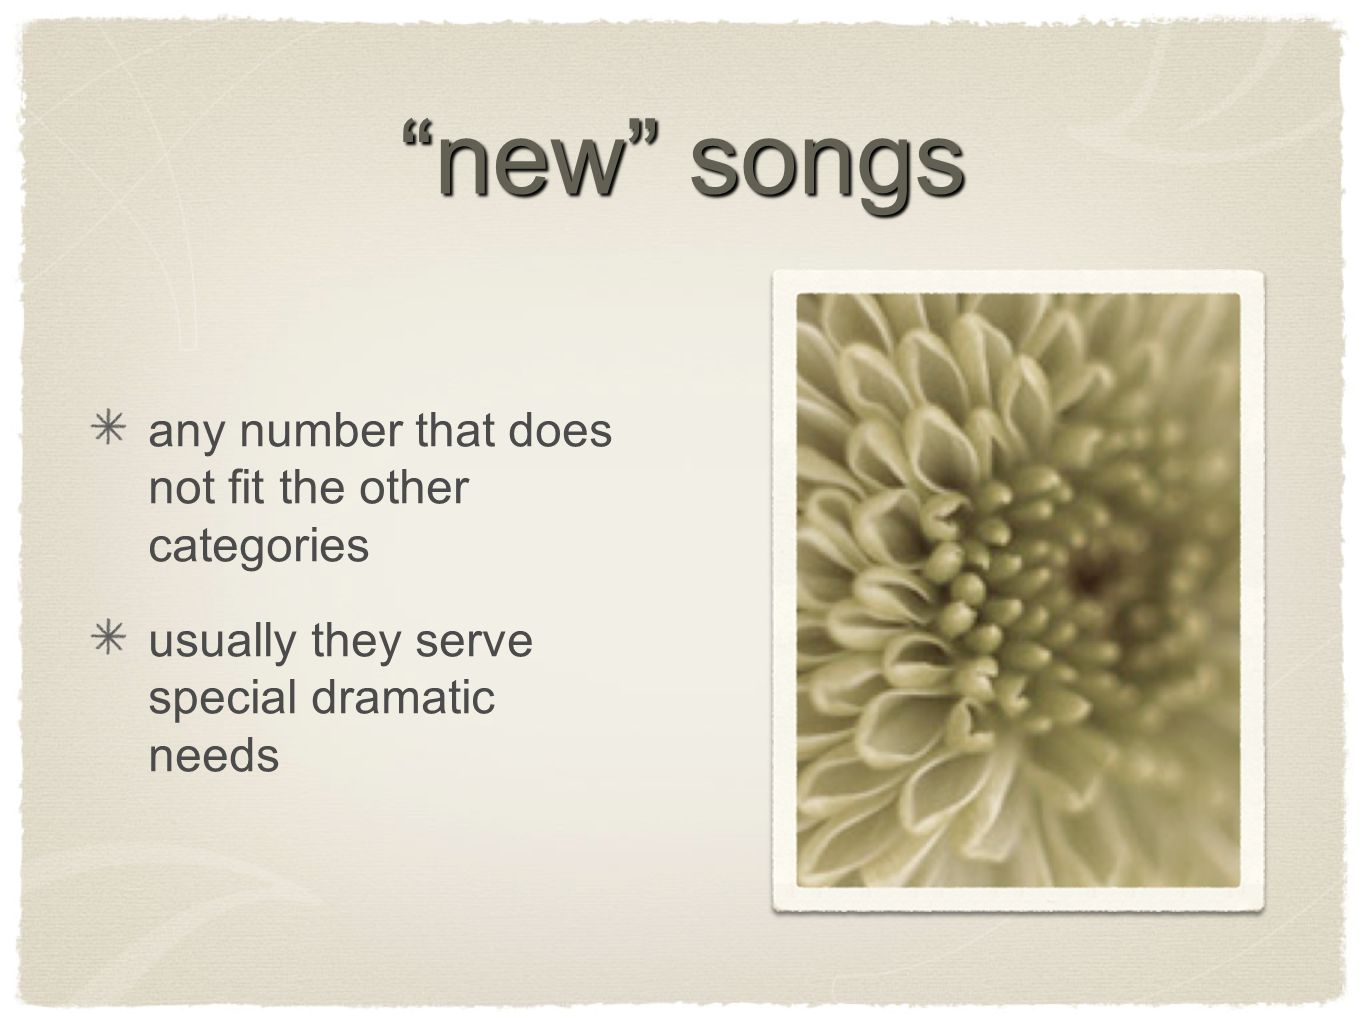 new songs any number that does not fit the other categories usually they serve special dramatic needs